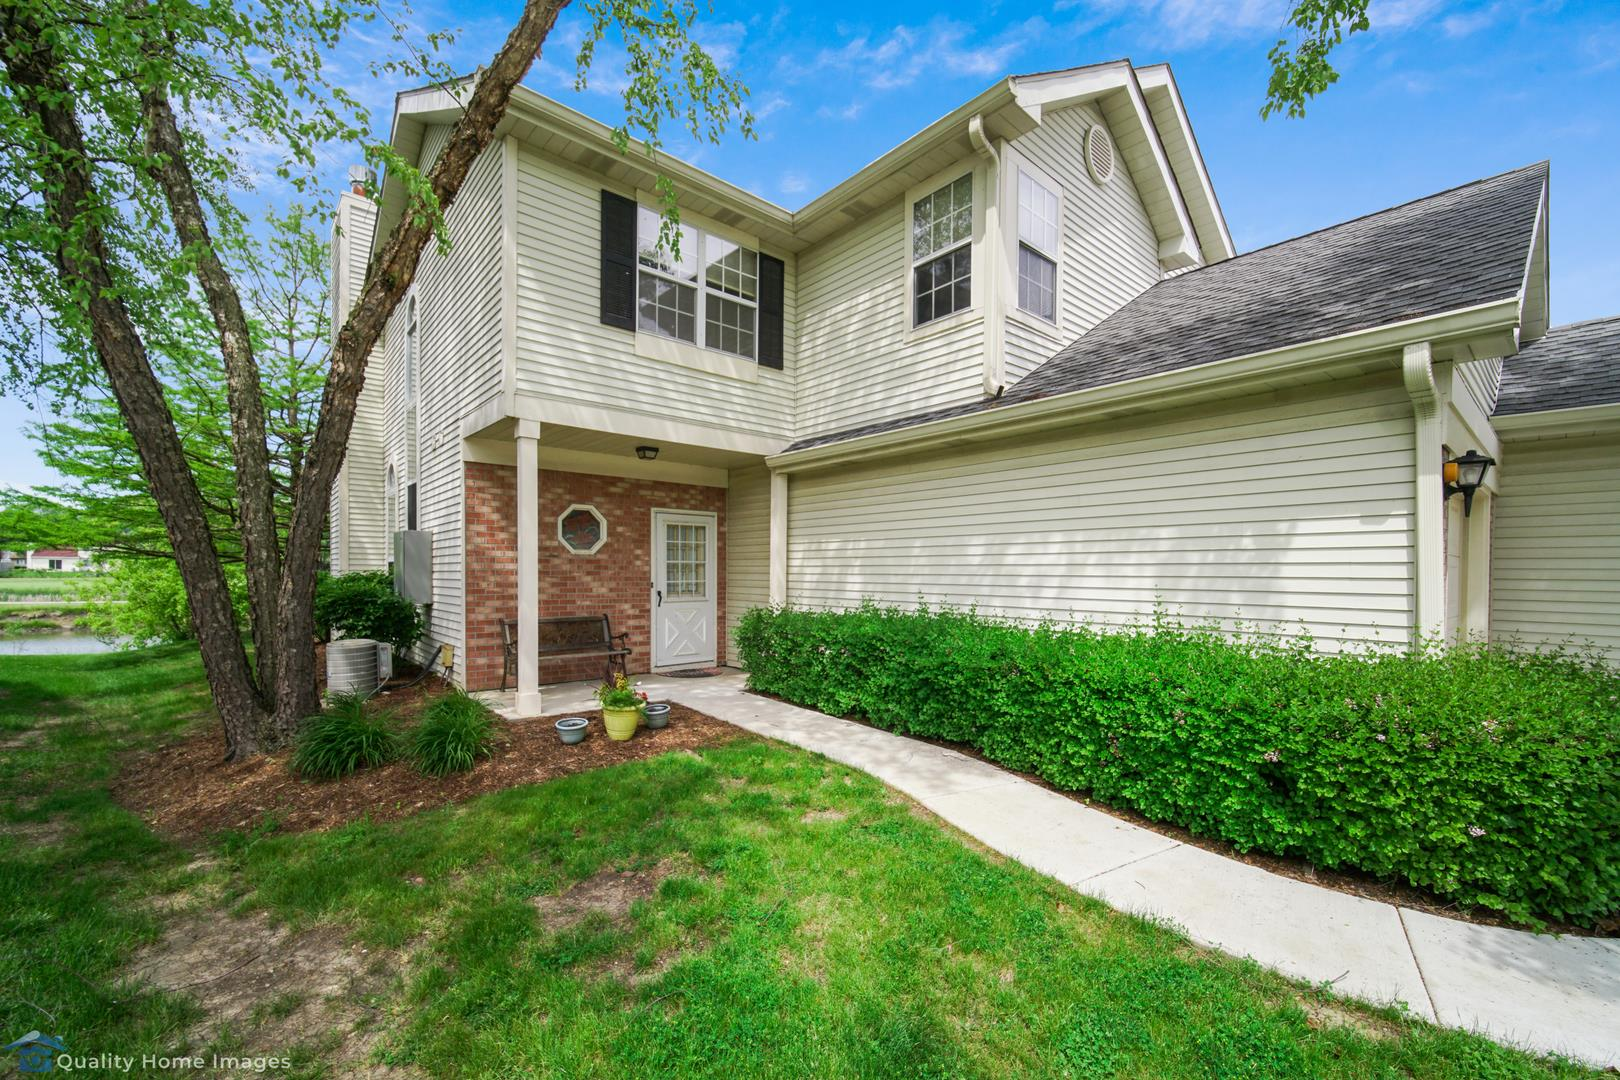 54 N Golfview Court #54, Glendale Heights, IL 60139 - #: 10737093